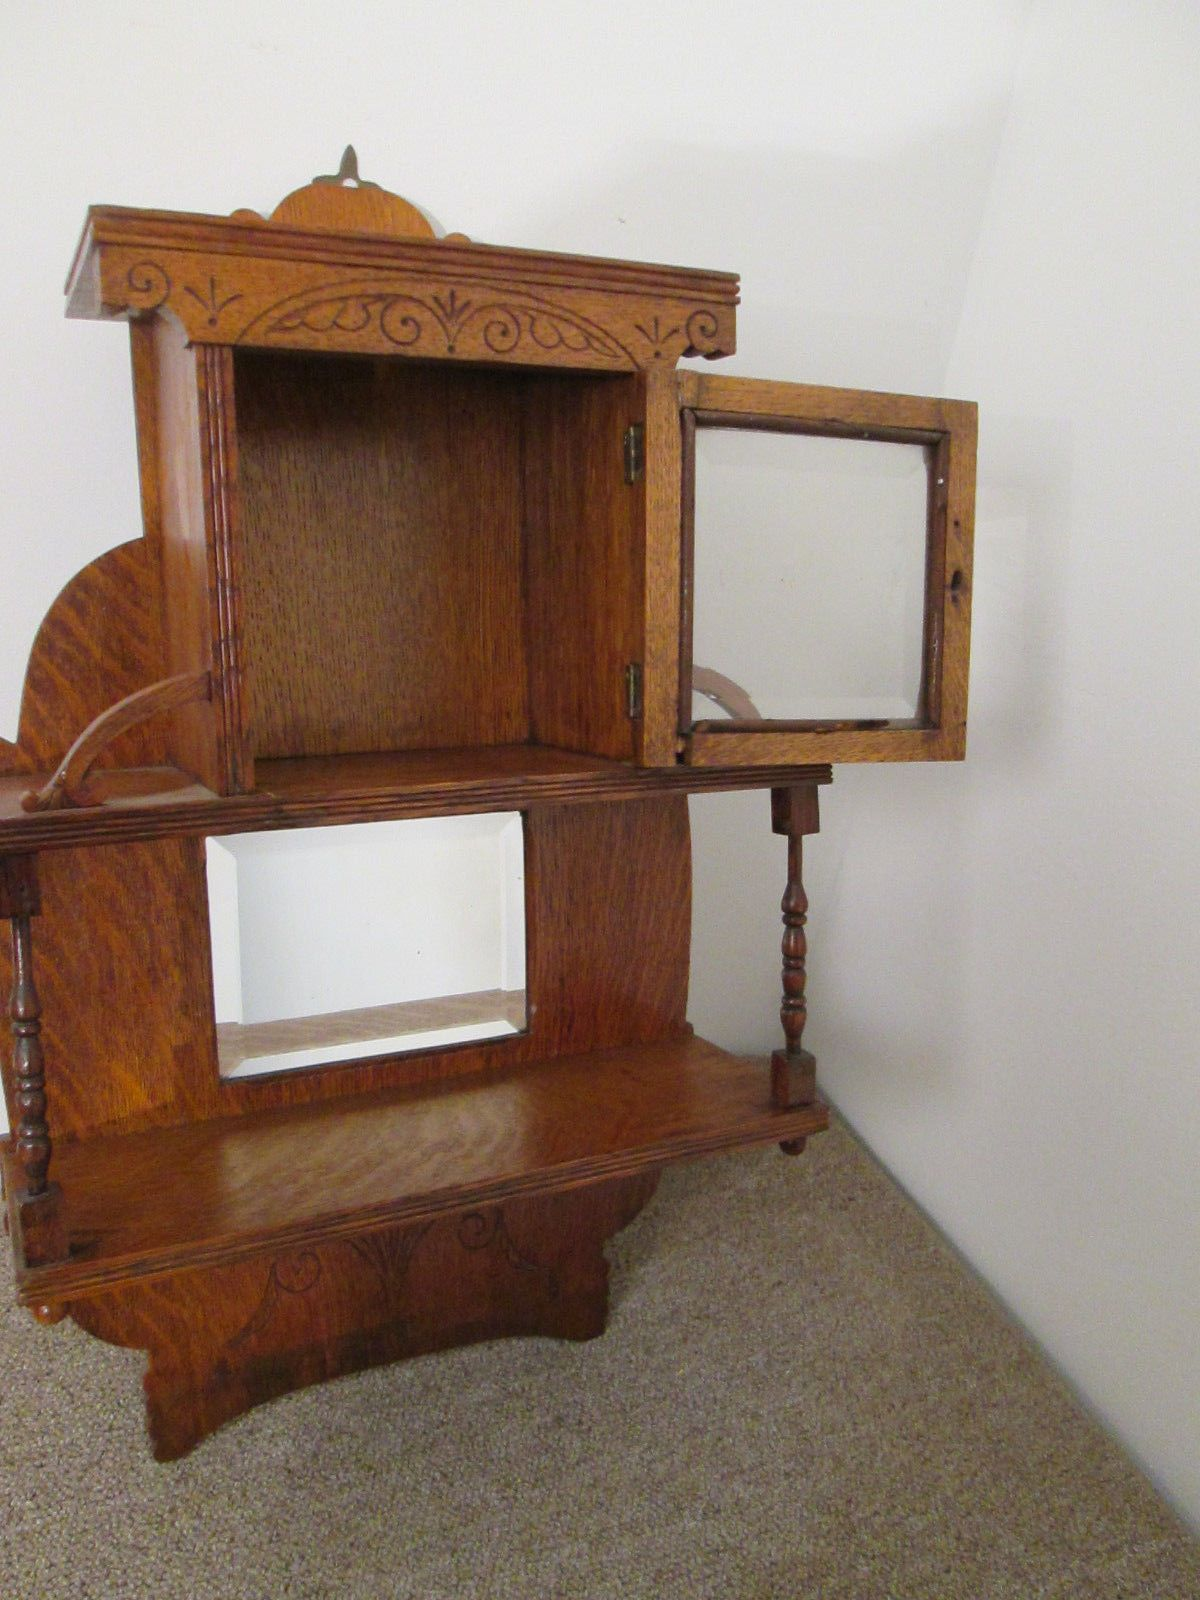 Uncategorized Antique Shelving 58082 antique victorian oak whatnot curio shelf cabinet cabinet